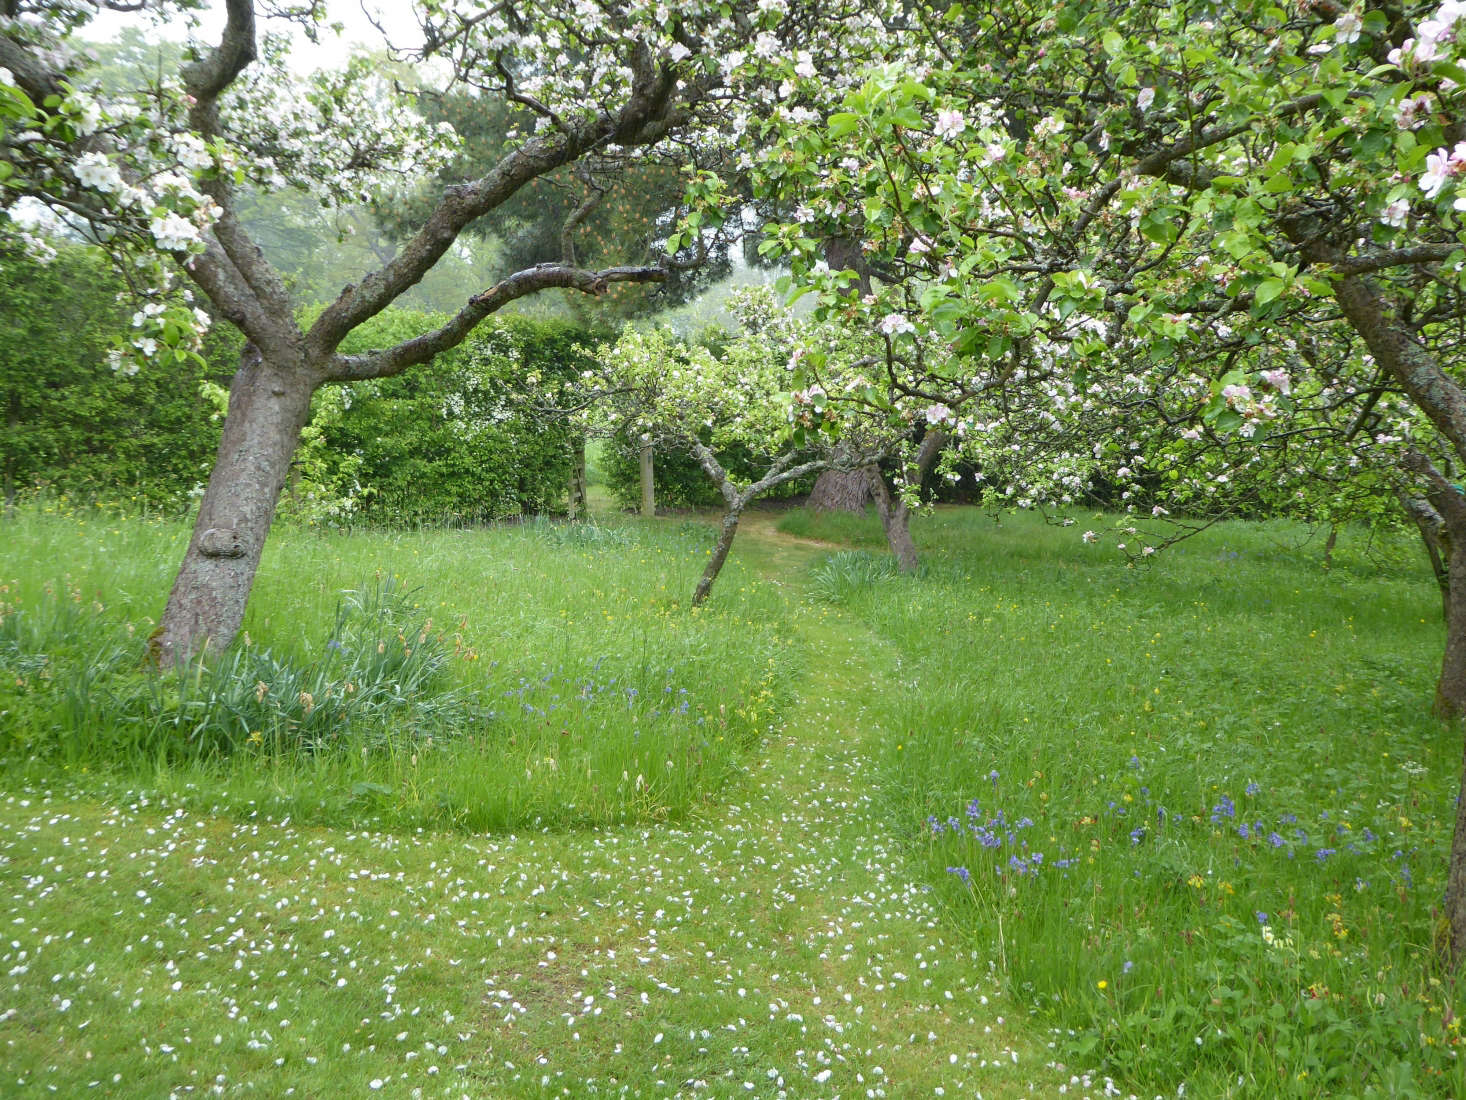 A mown path guides you into the orchard.